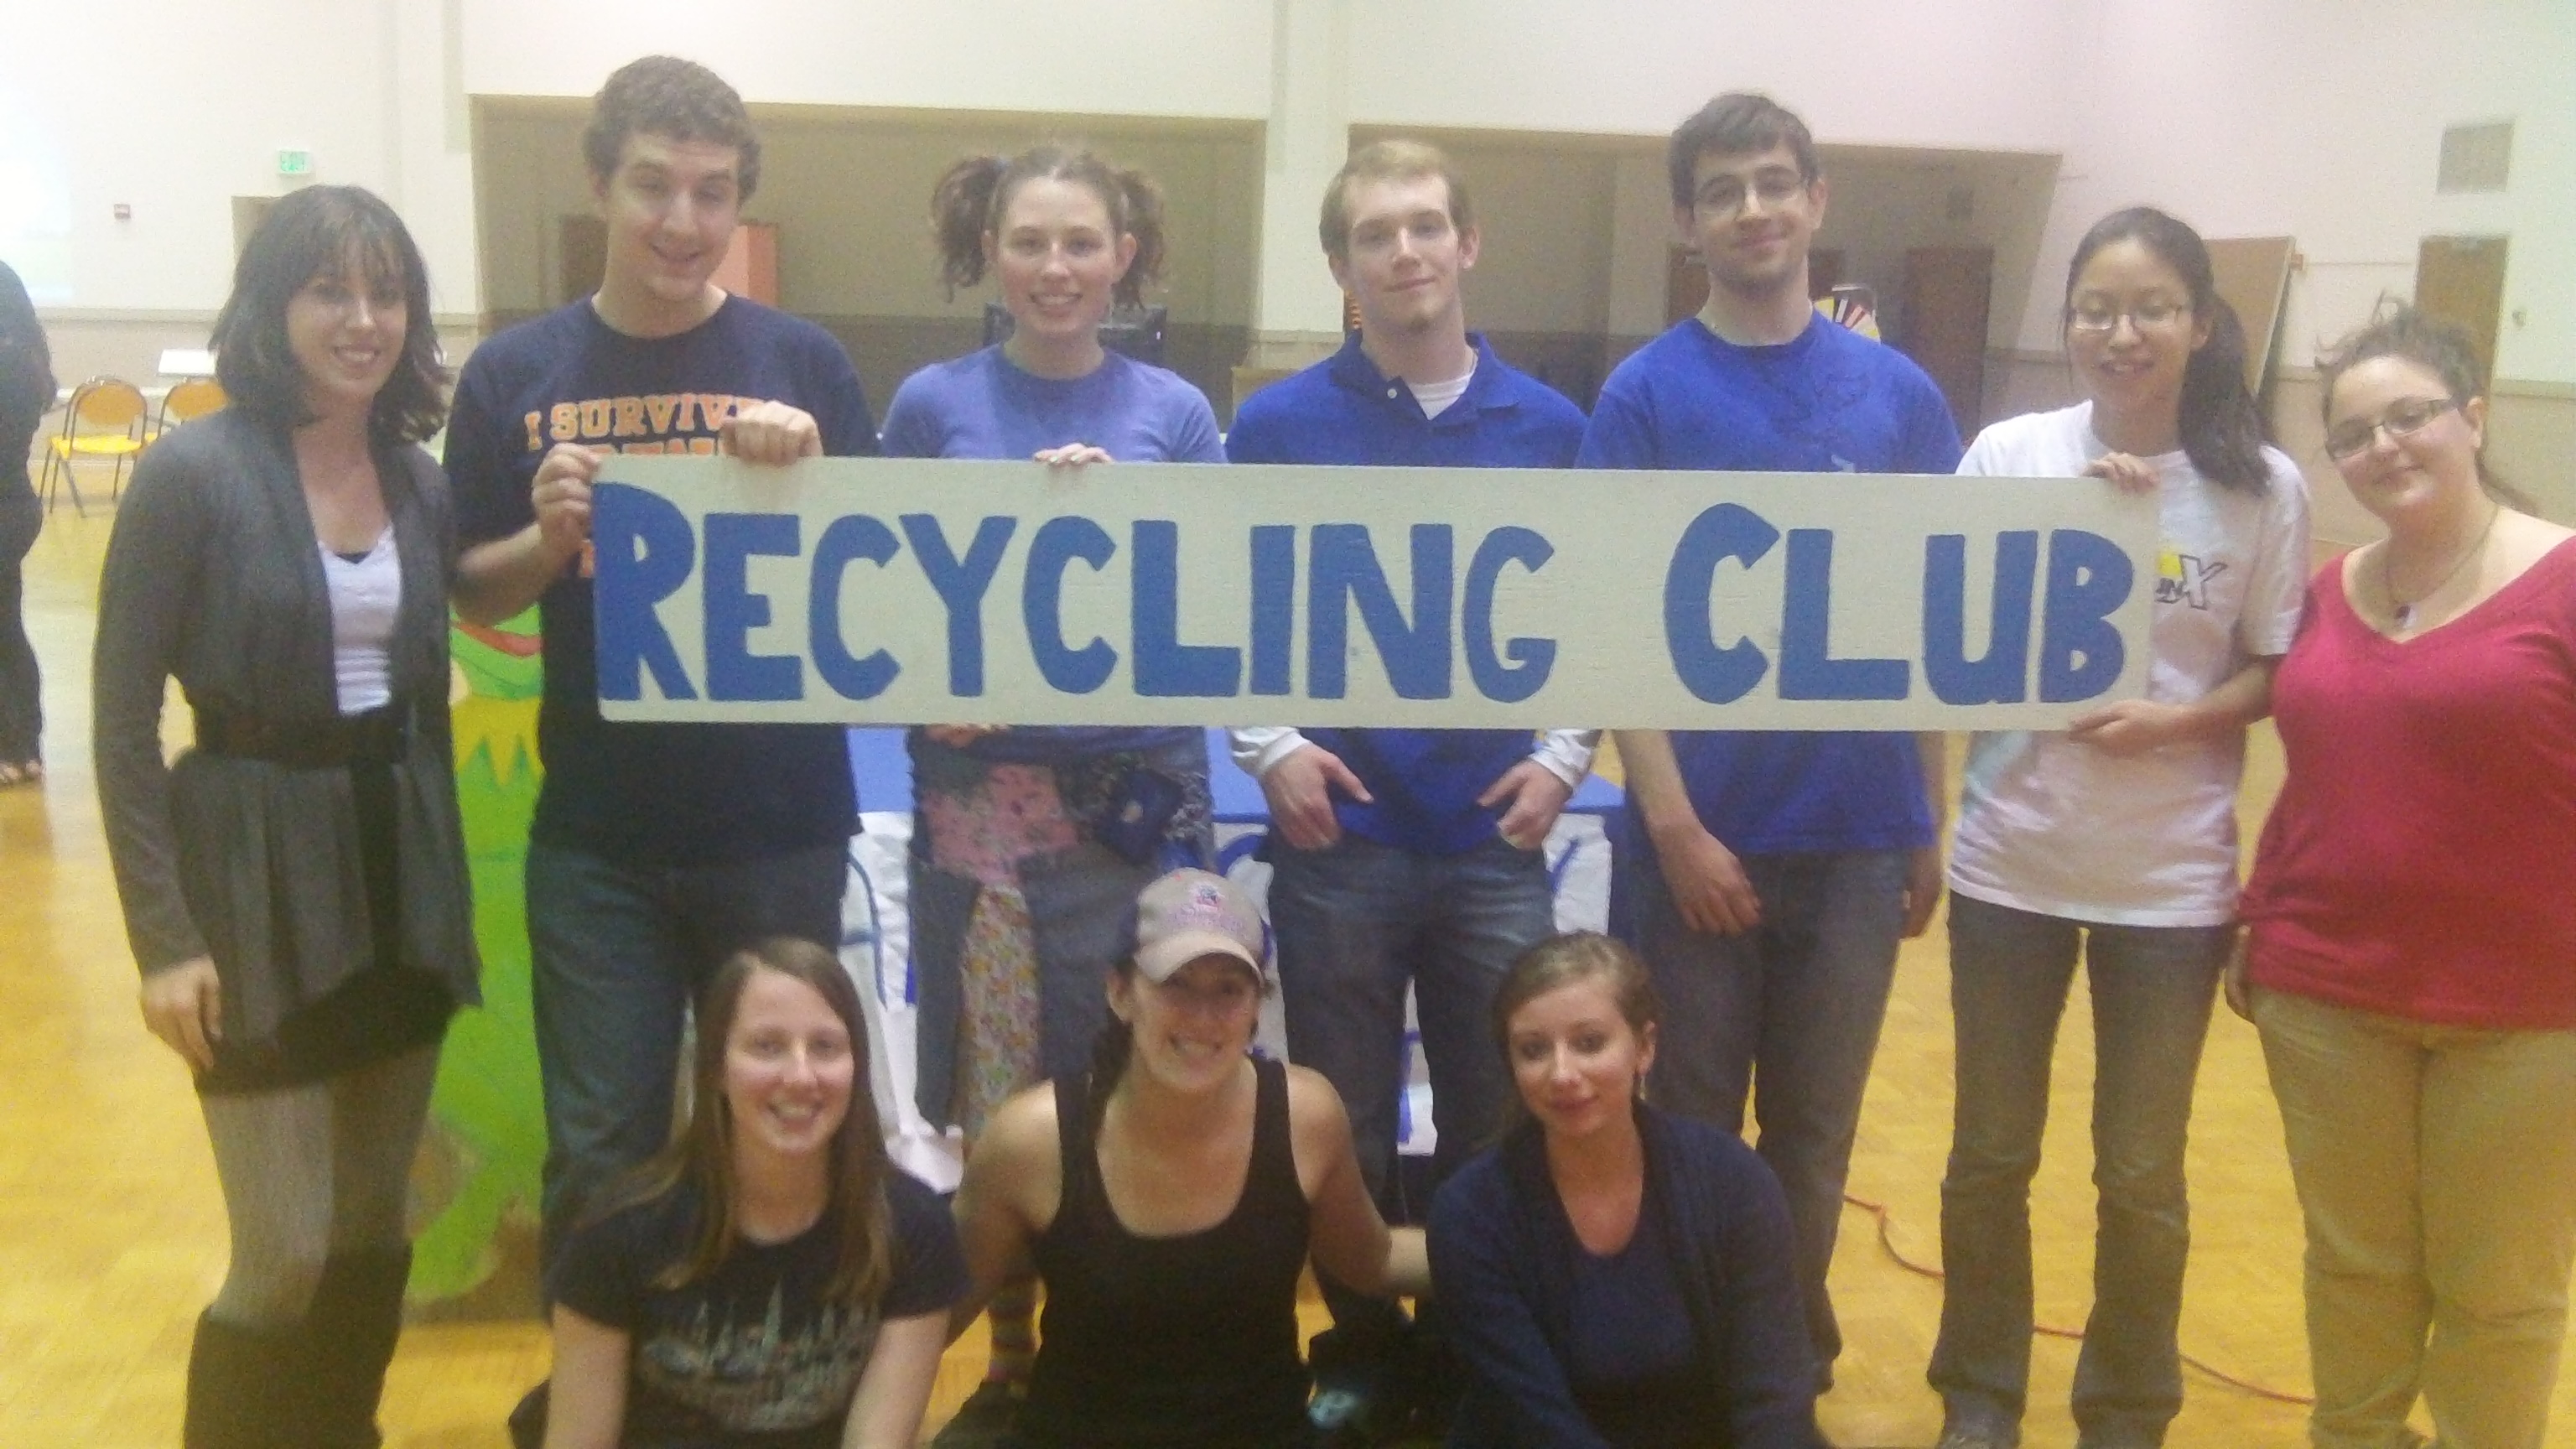 Members of SUNY New Paltz's Recycling Club. Photo by Bianca Mendez.